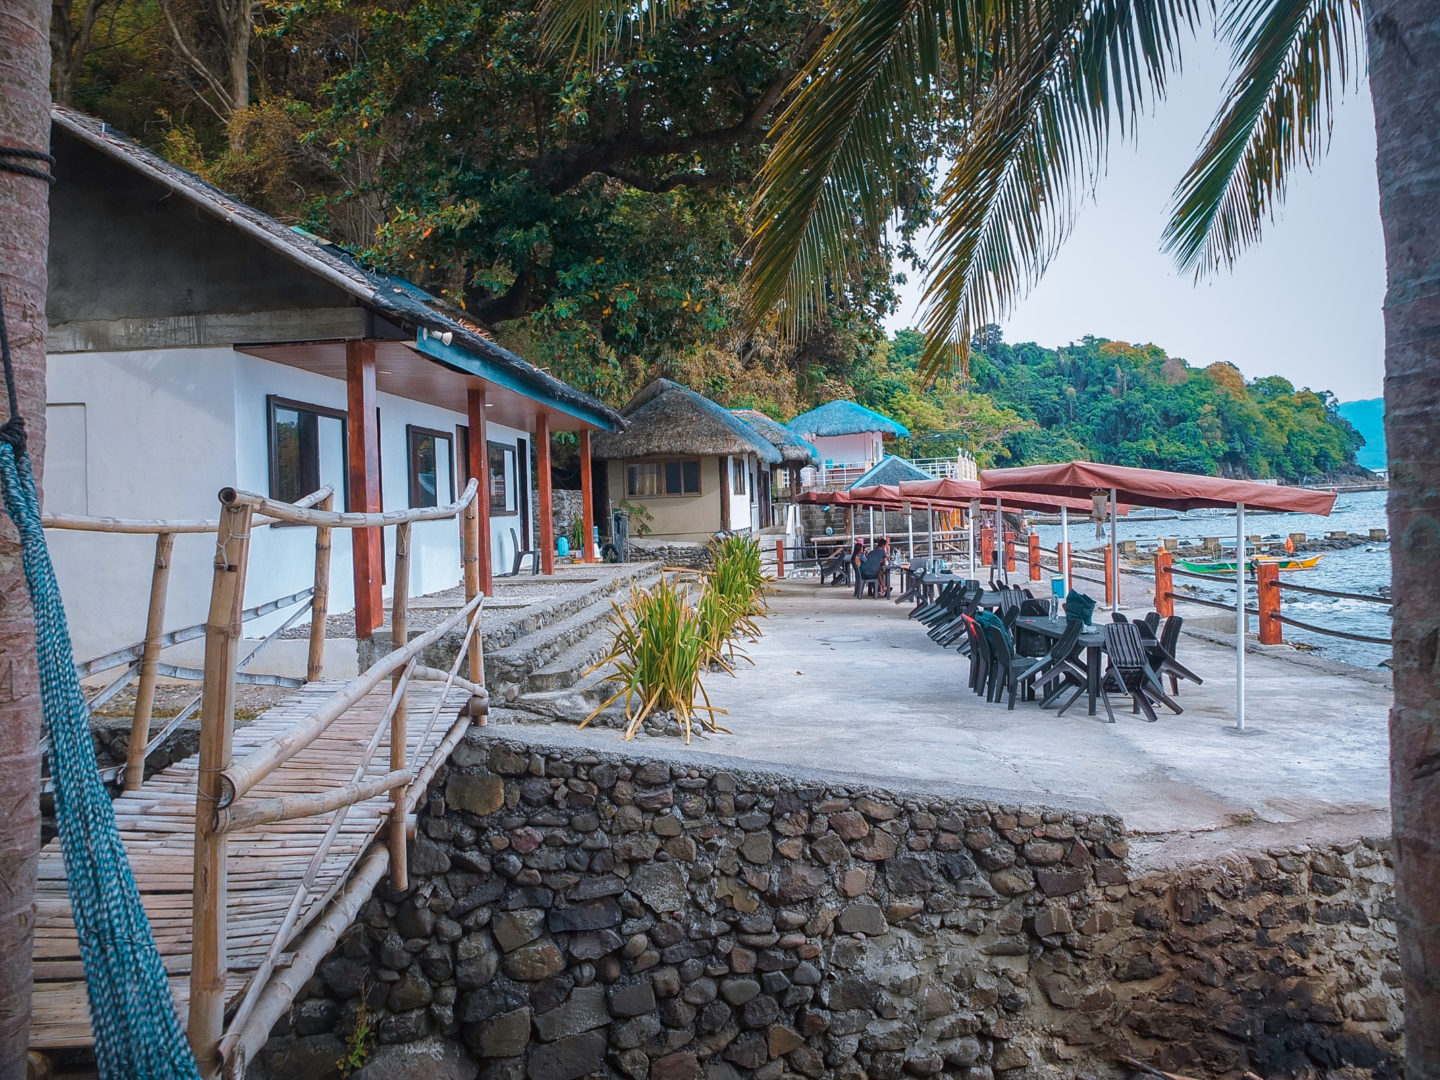 Bus Stop Dive Resort Diving Experience With School Of Jacks In Batangas Marine Sanctuary